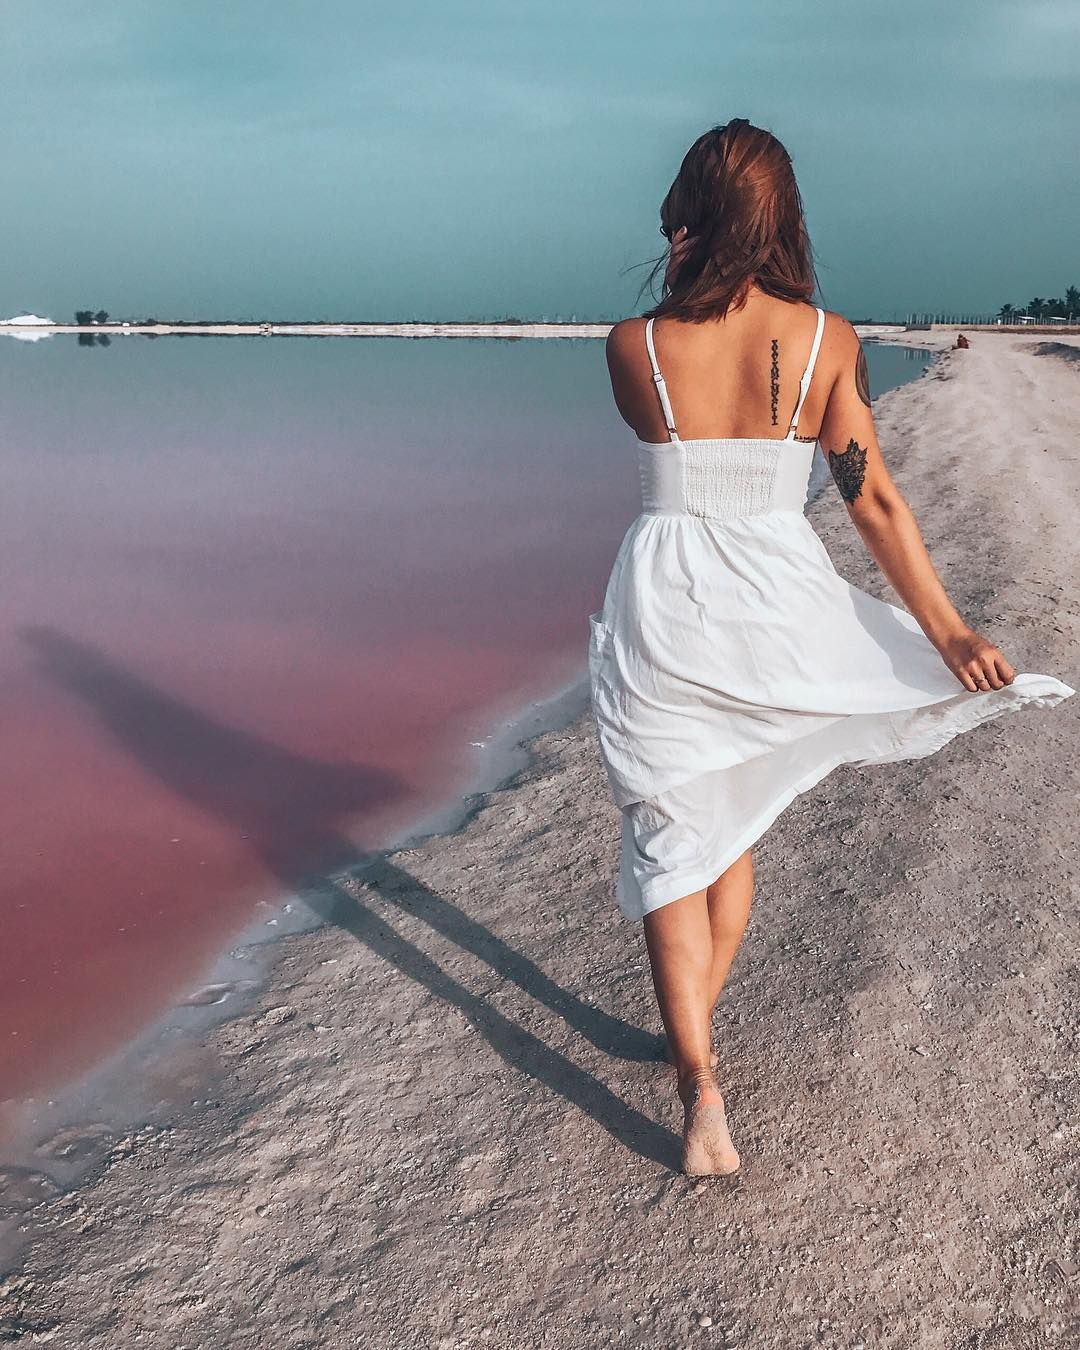 Pink Lagoon and Pink Sand Beaches, Los Colorados in Rio Lagartos, Yucatan Peninsula, Mexico  |  Travel & Style, Beach Vibes, Outdoors, Adventure. Instagram Photograph @finding.jules